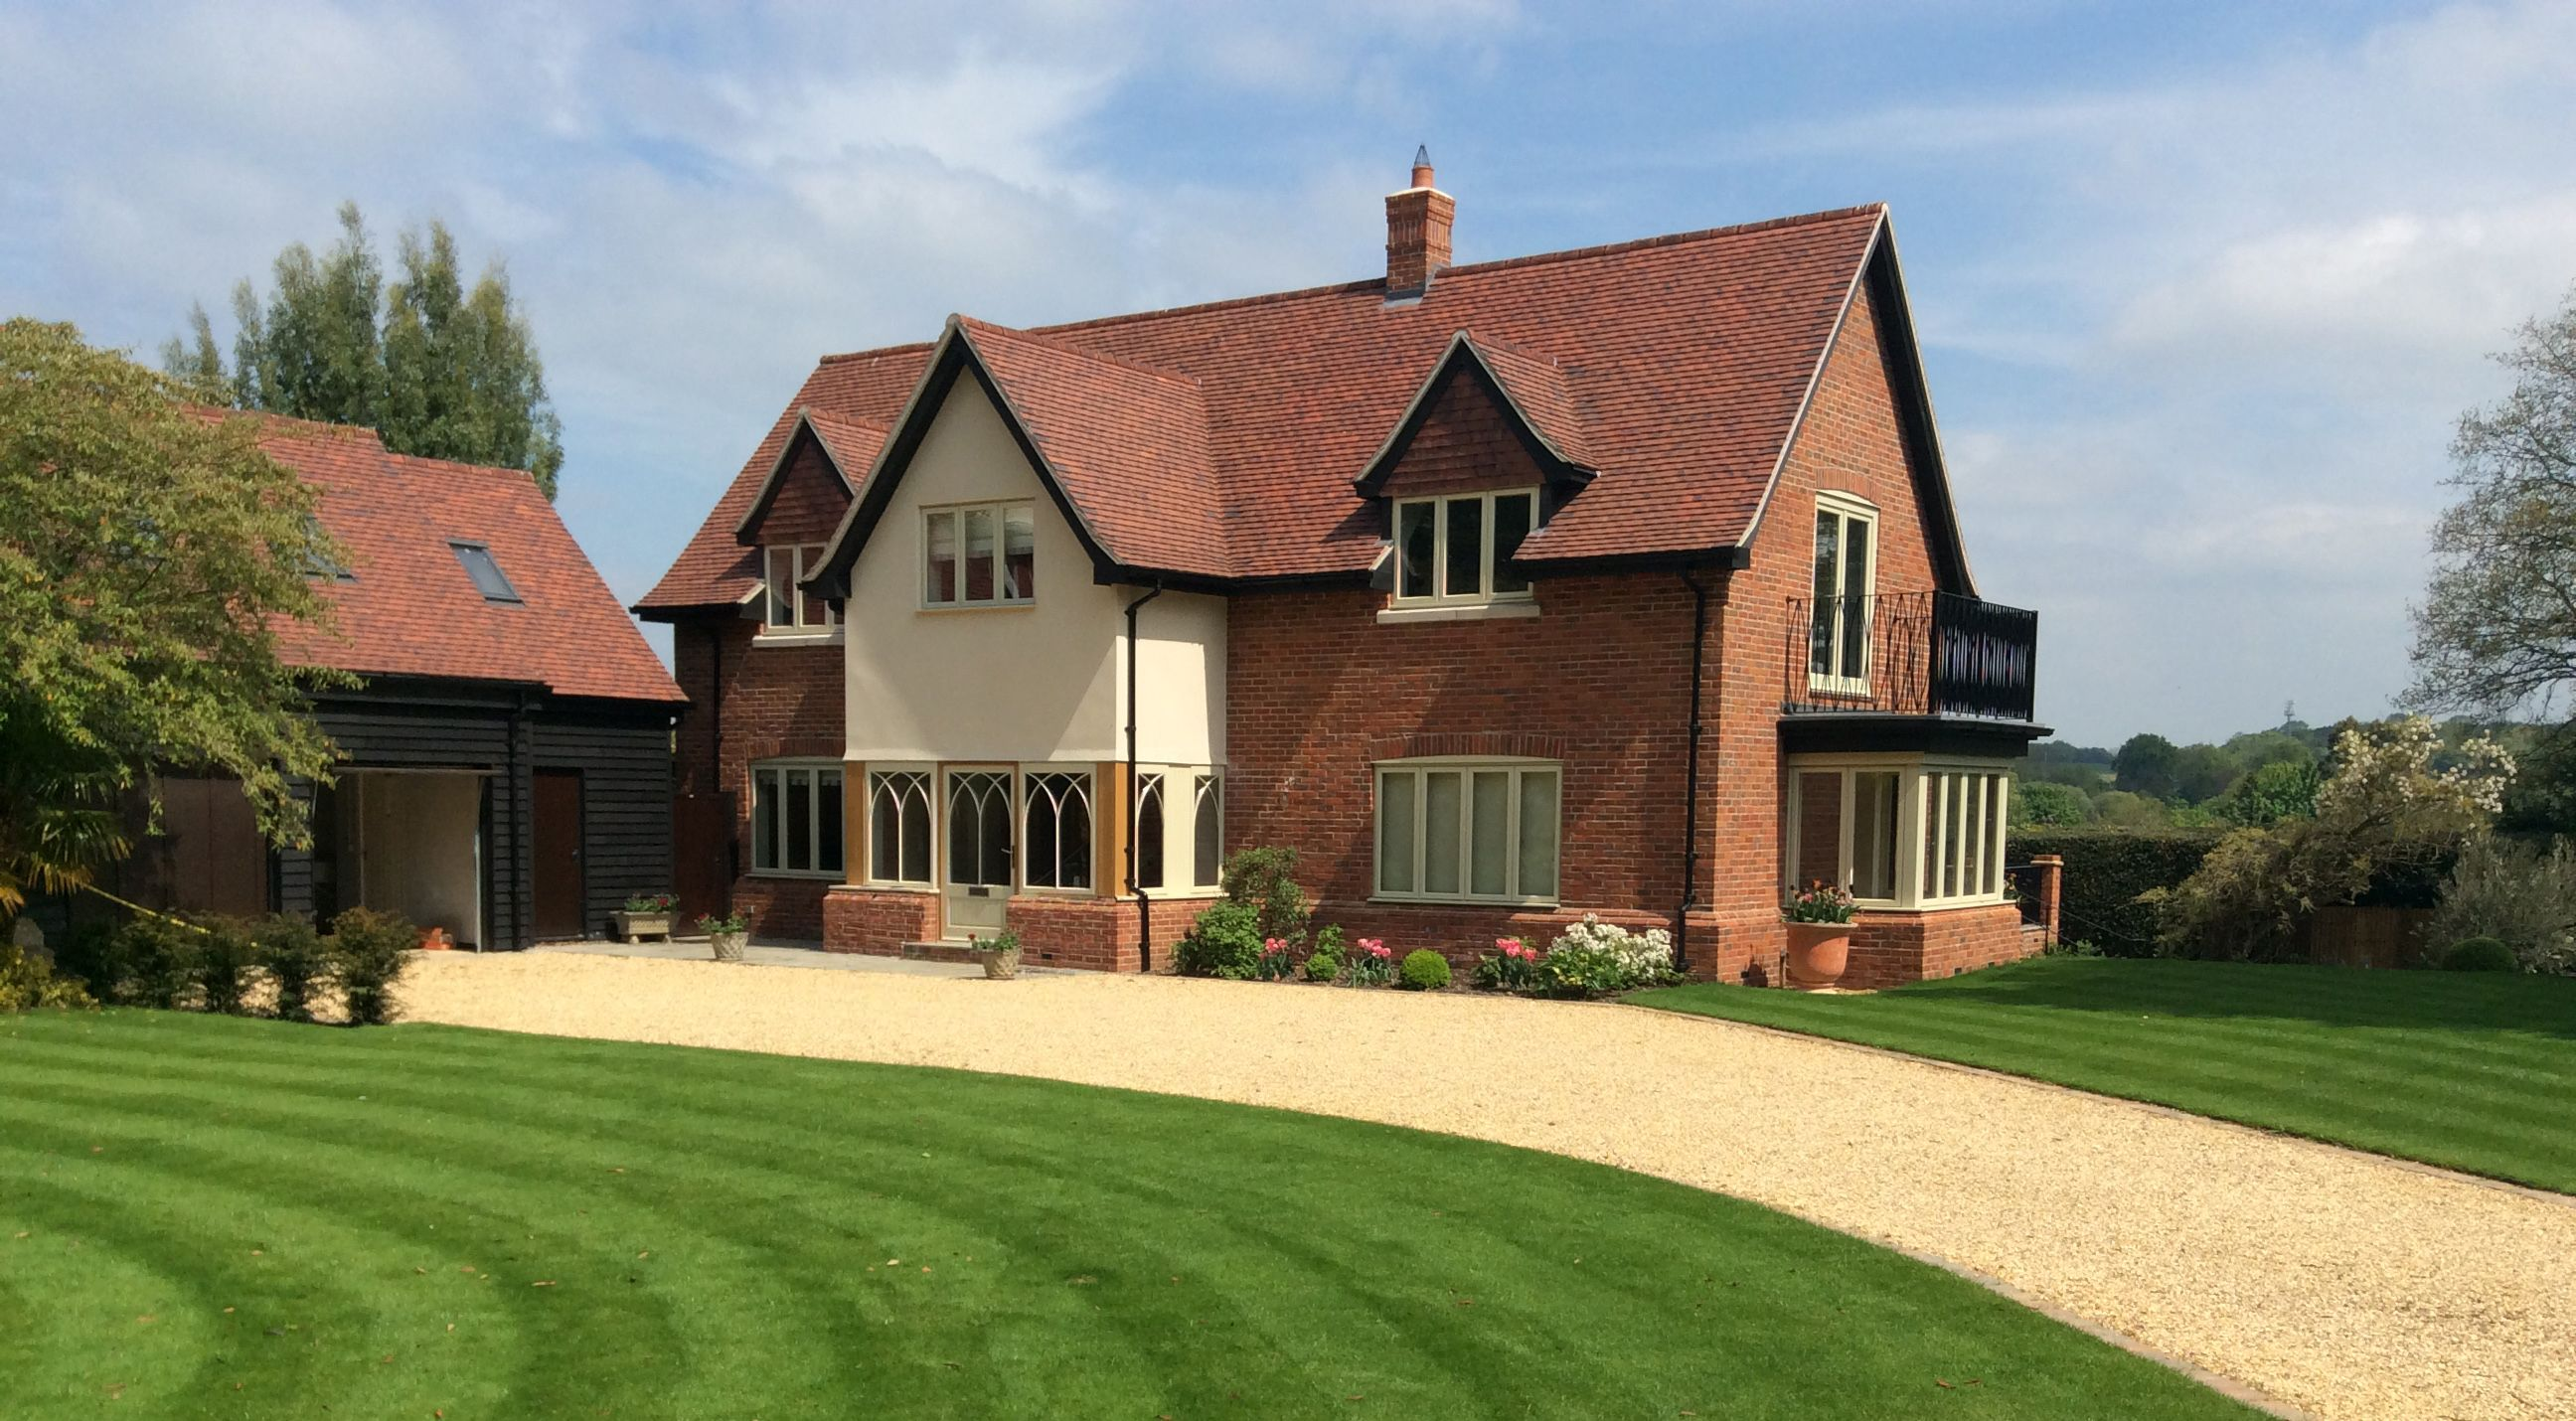 A Self Build Brick Block House Image From D M Homes Enquiries Dm Homes Co Uk Self Build Houses House Building